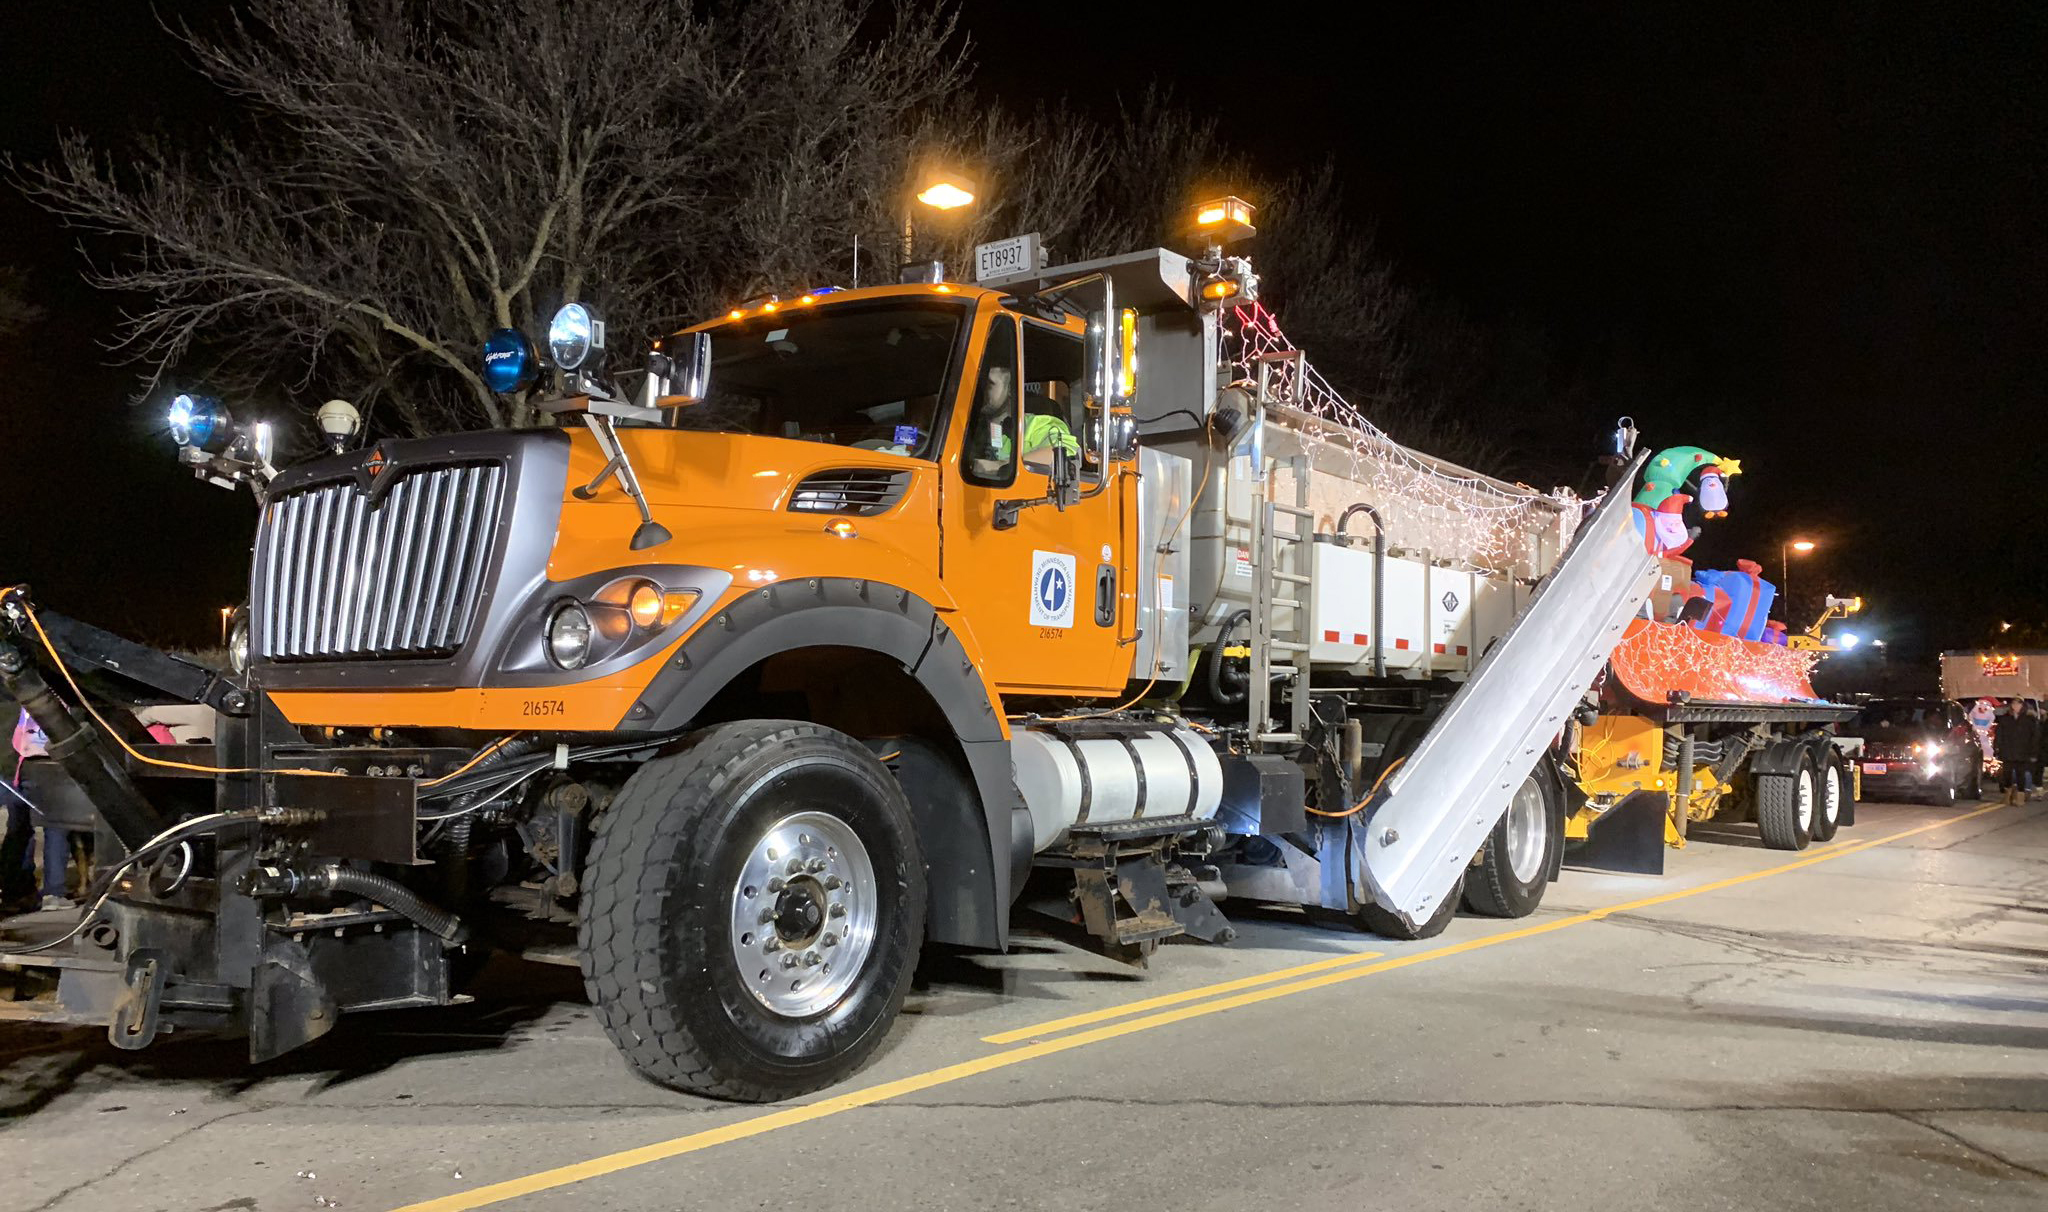 Photo: a MnDOT snowplow covered in twinkling holiday lights